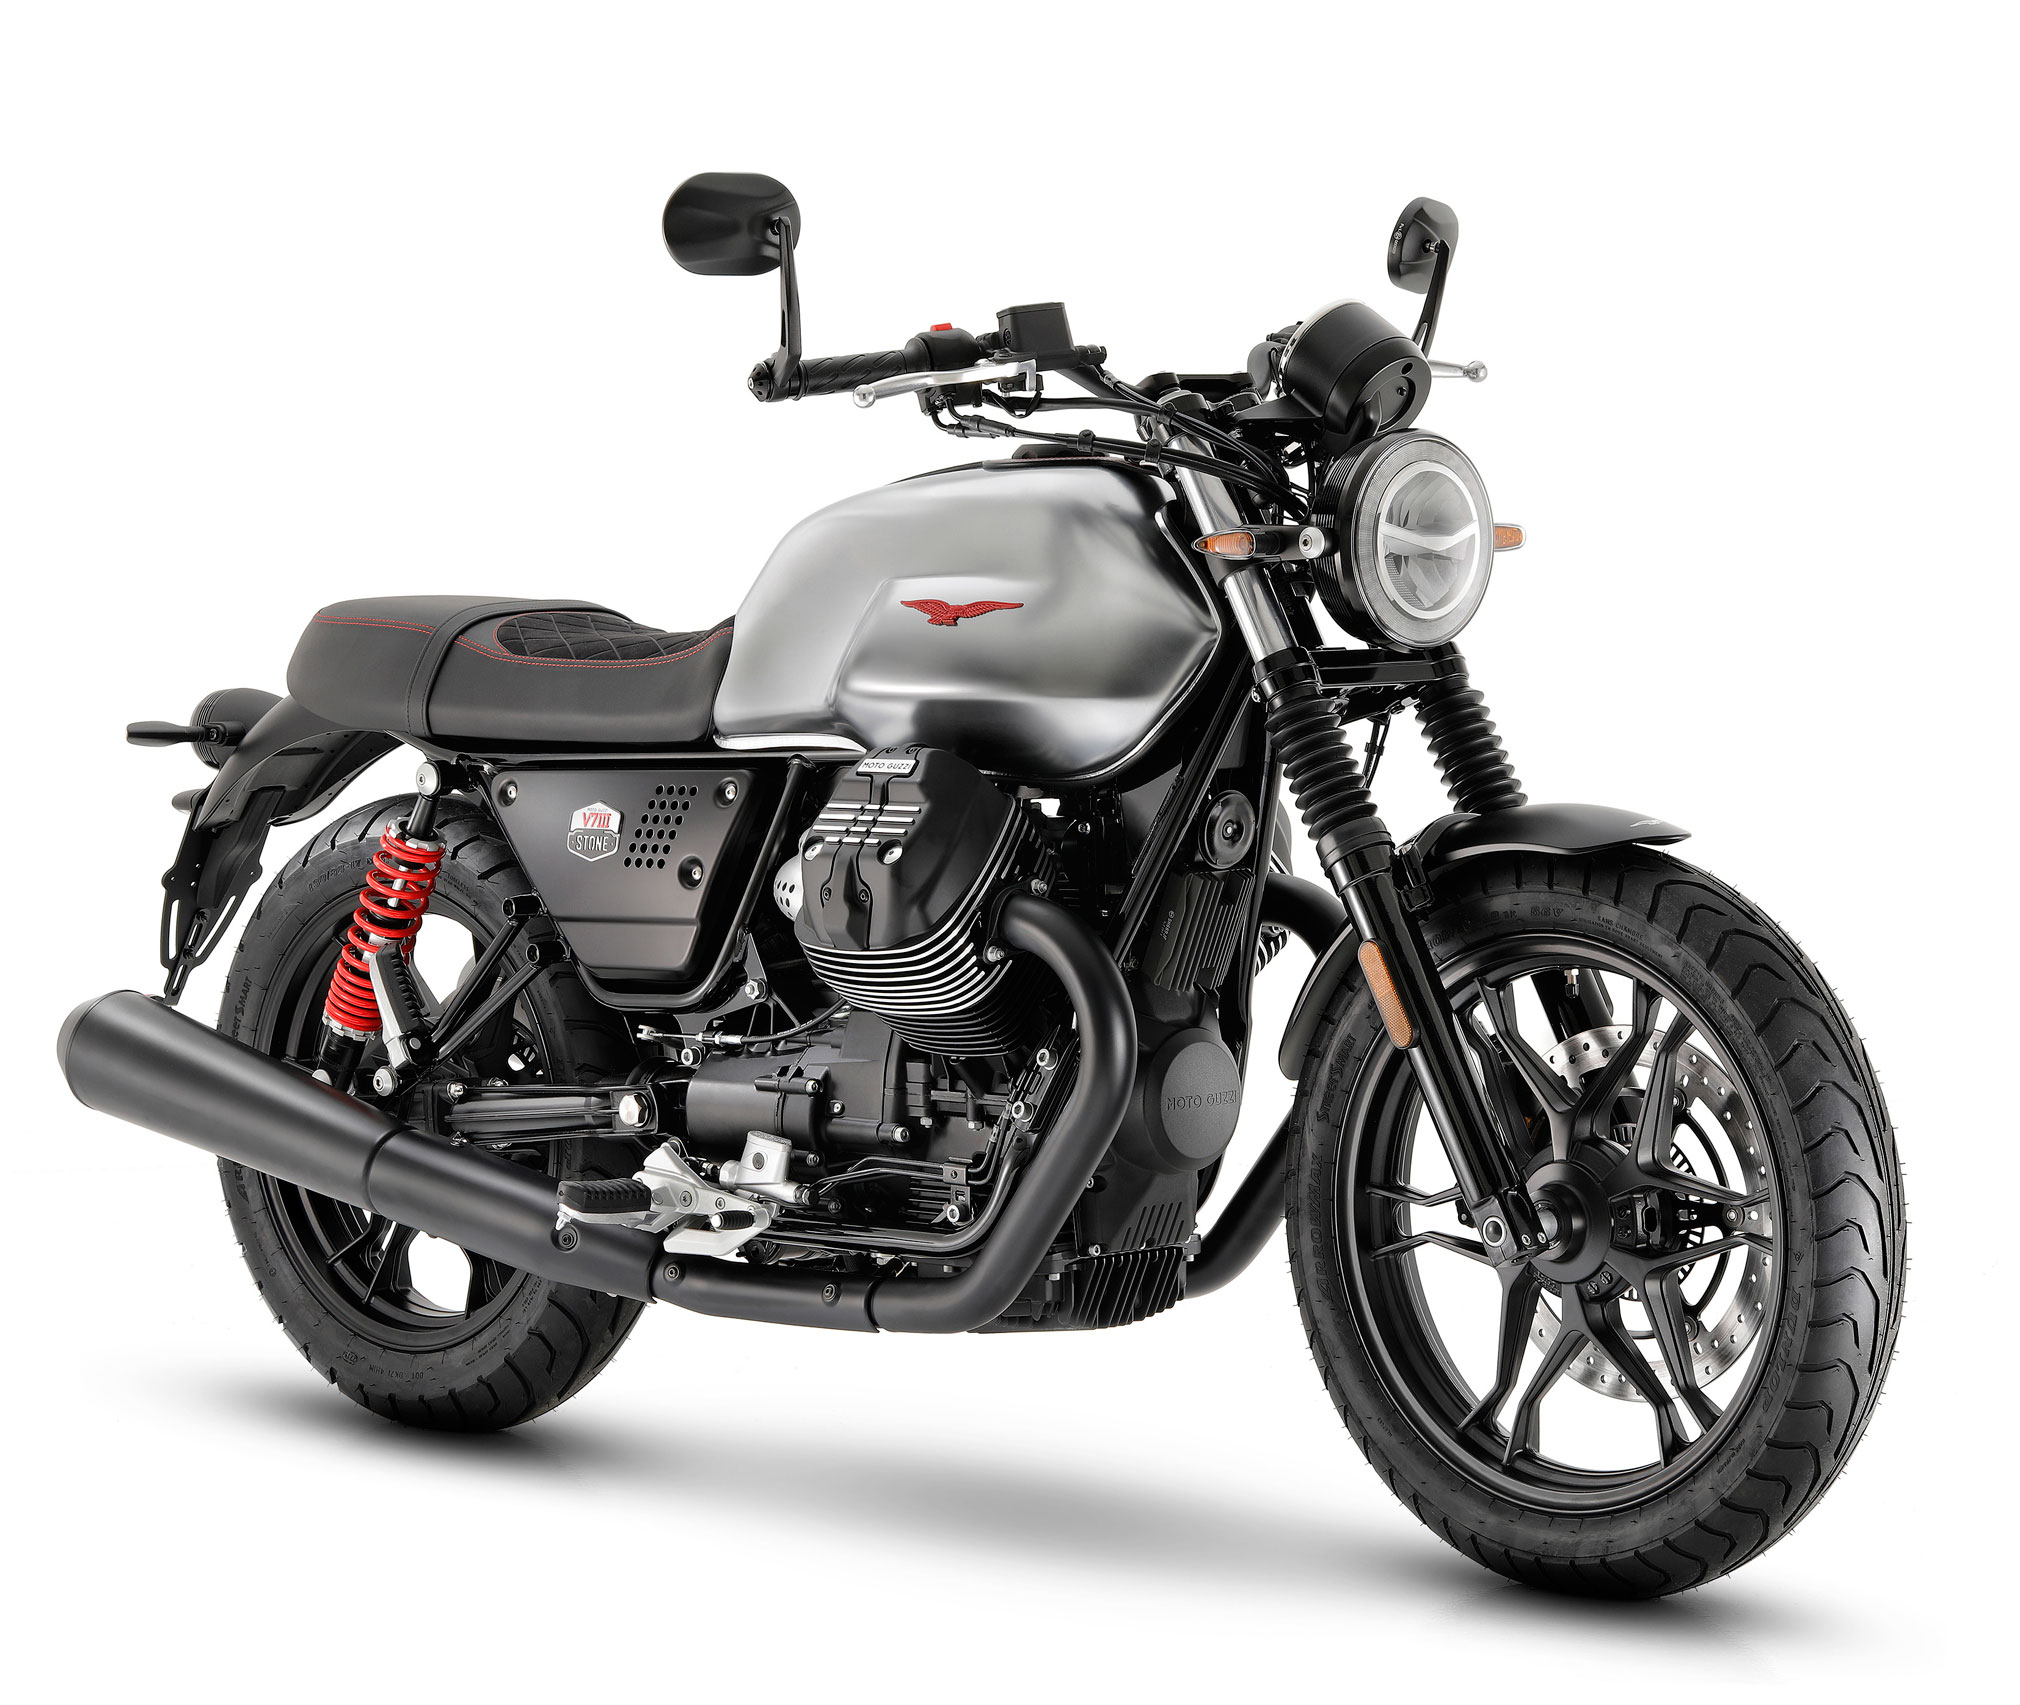 2020 moto guzzi v7 iii stone s guide total motorcycle. Black Bedroom Furniture Sets. Home Design Ideas